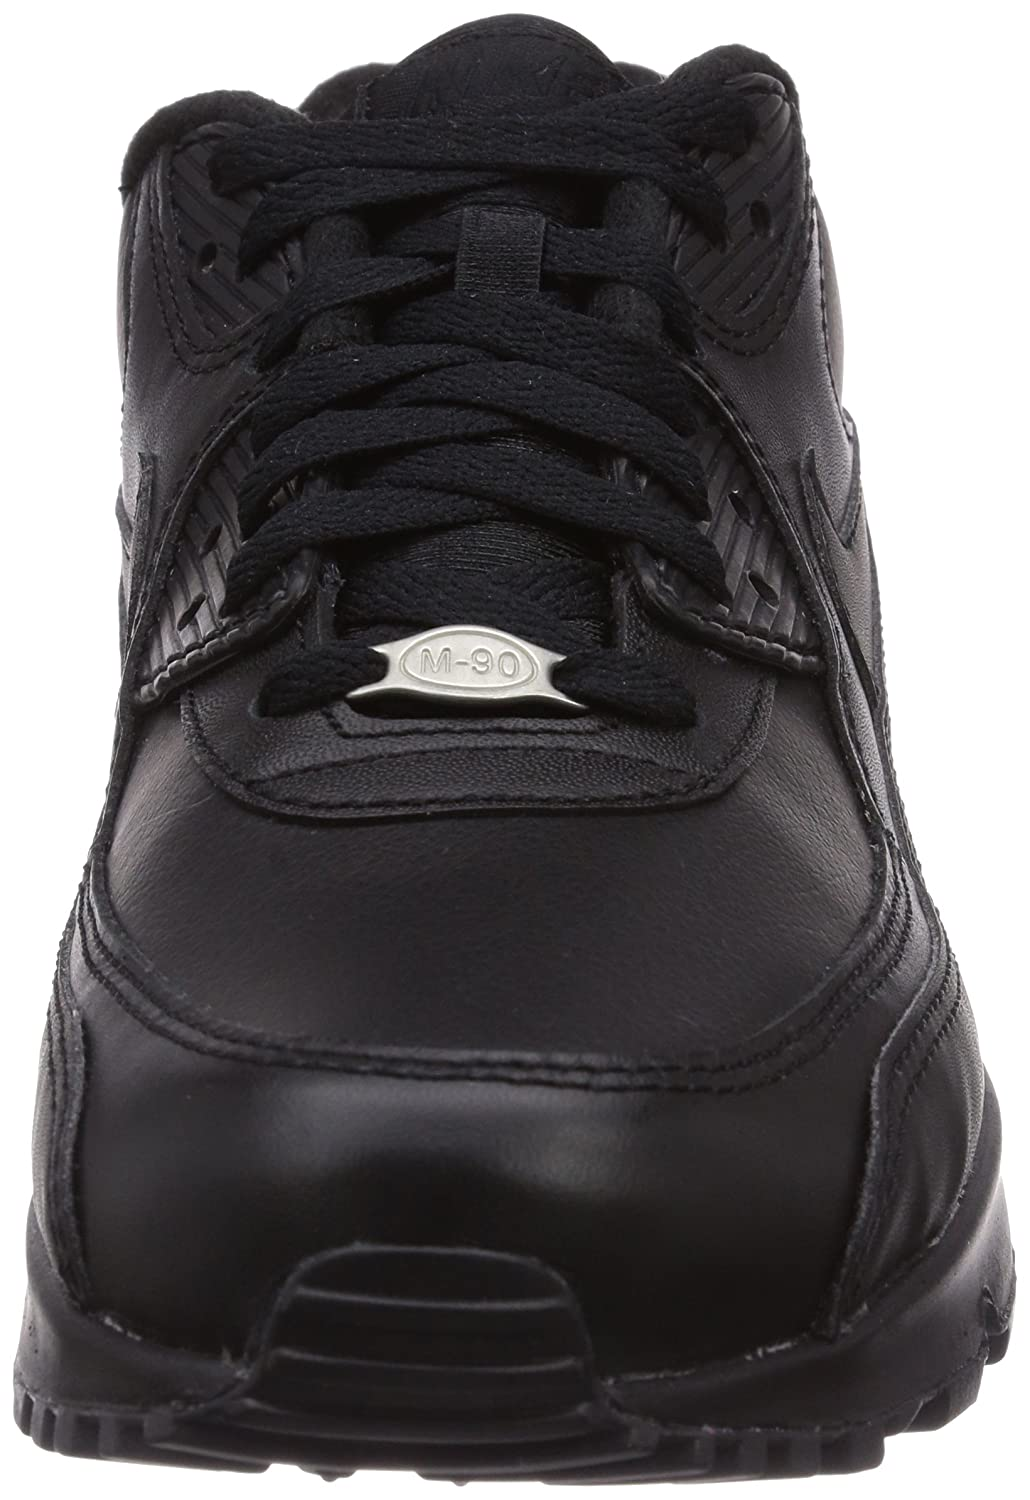 buy popular 1a57e 0bbd6 Nike Air Max 90 Leather Scarpe da ginnastica  Amazon.it  Scarpe e borse